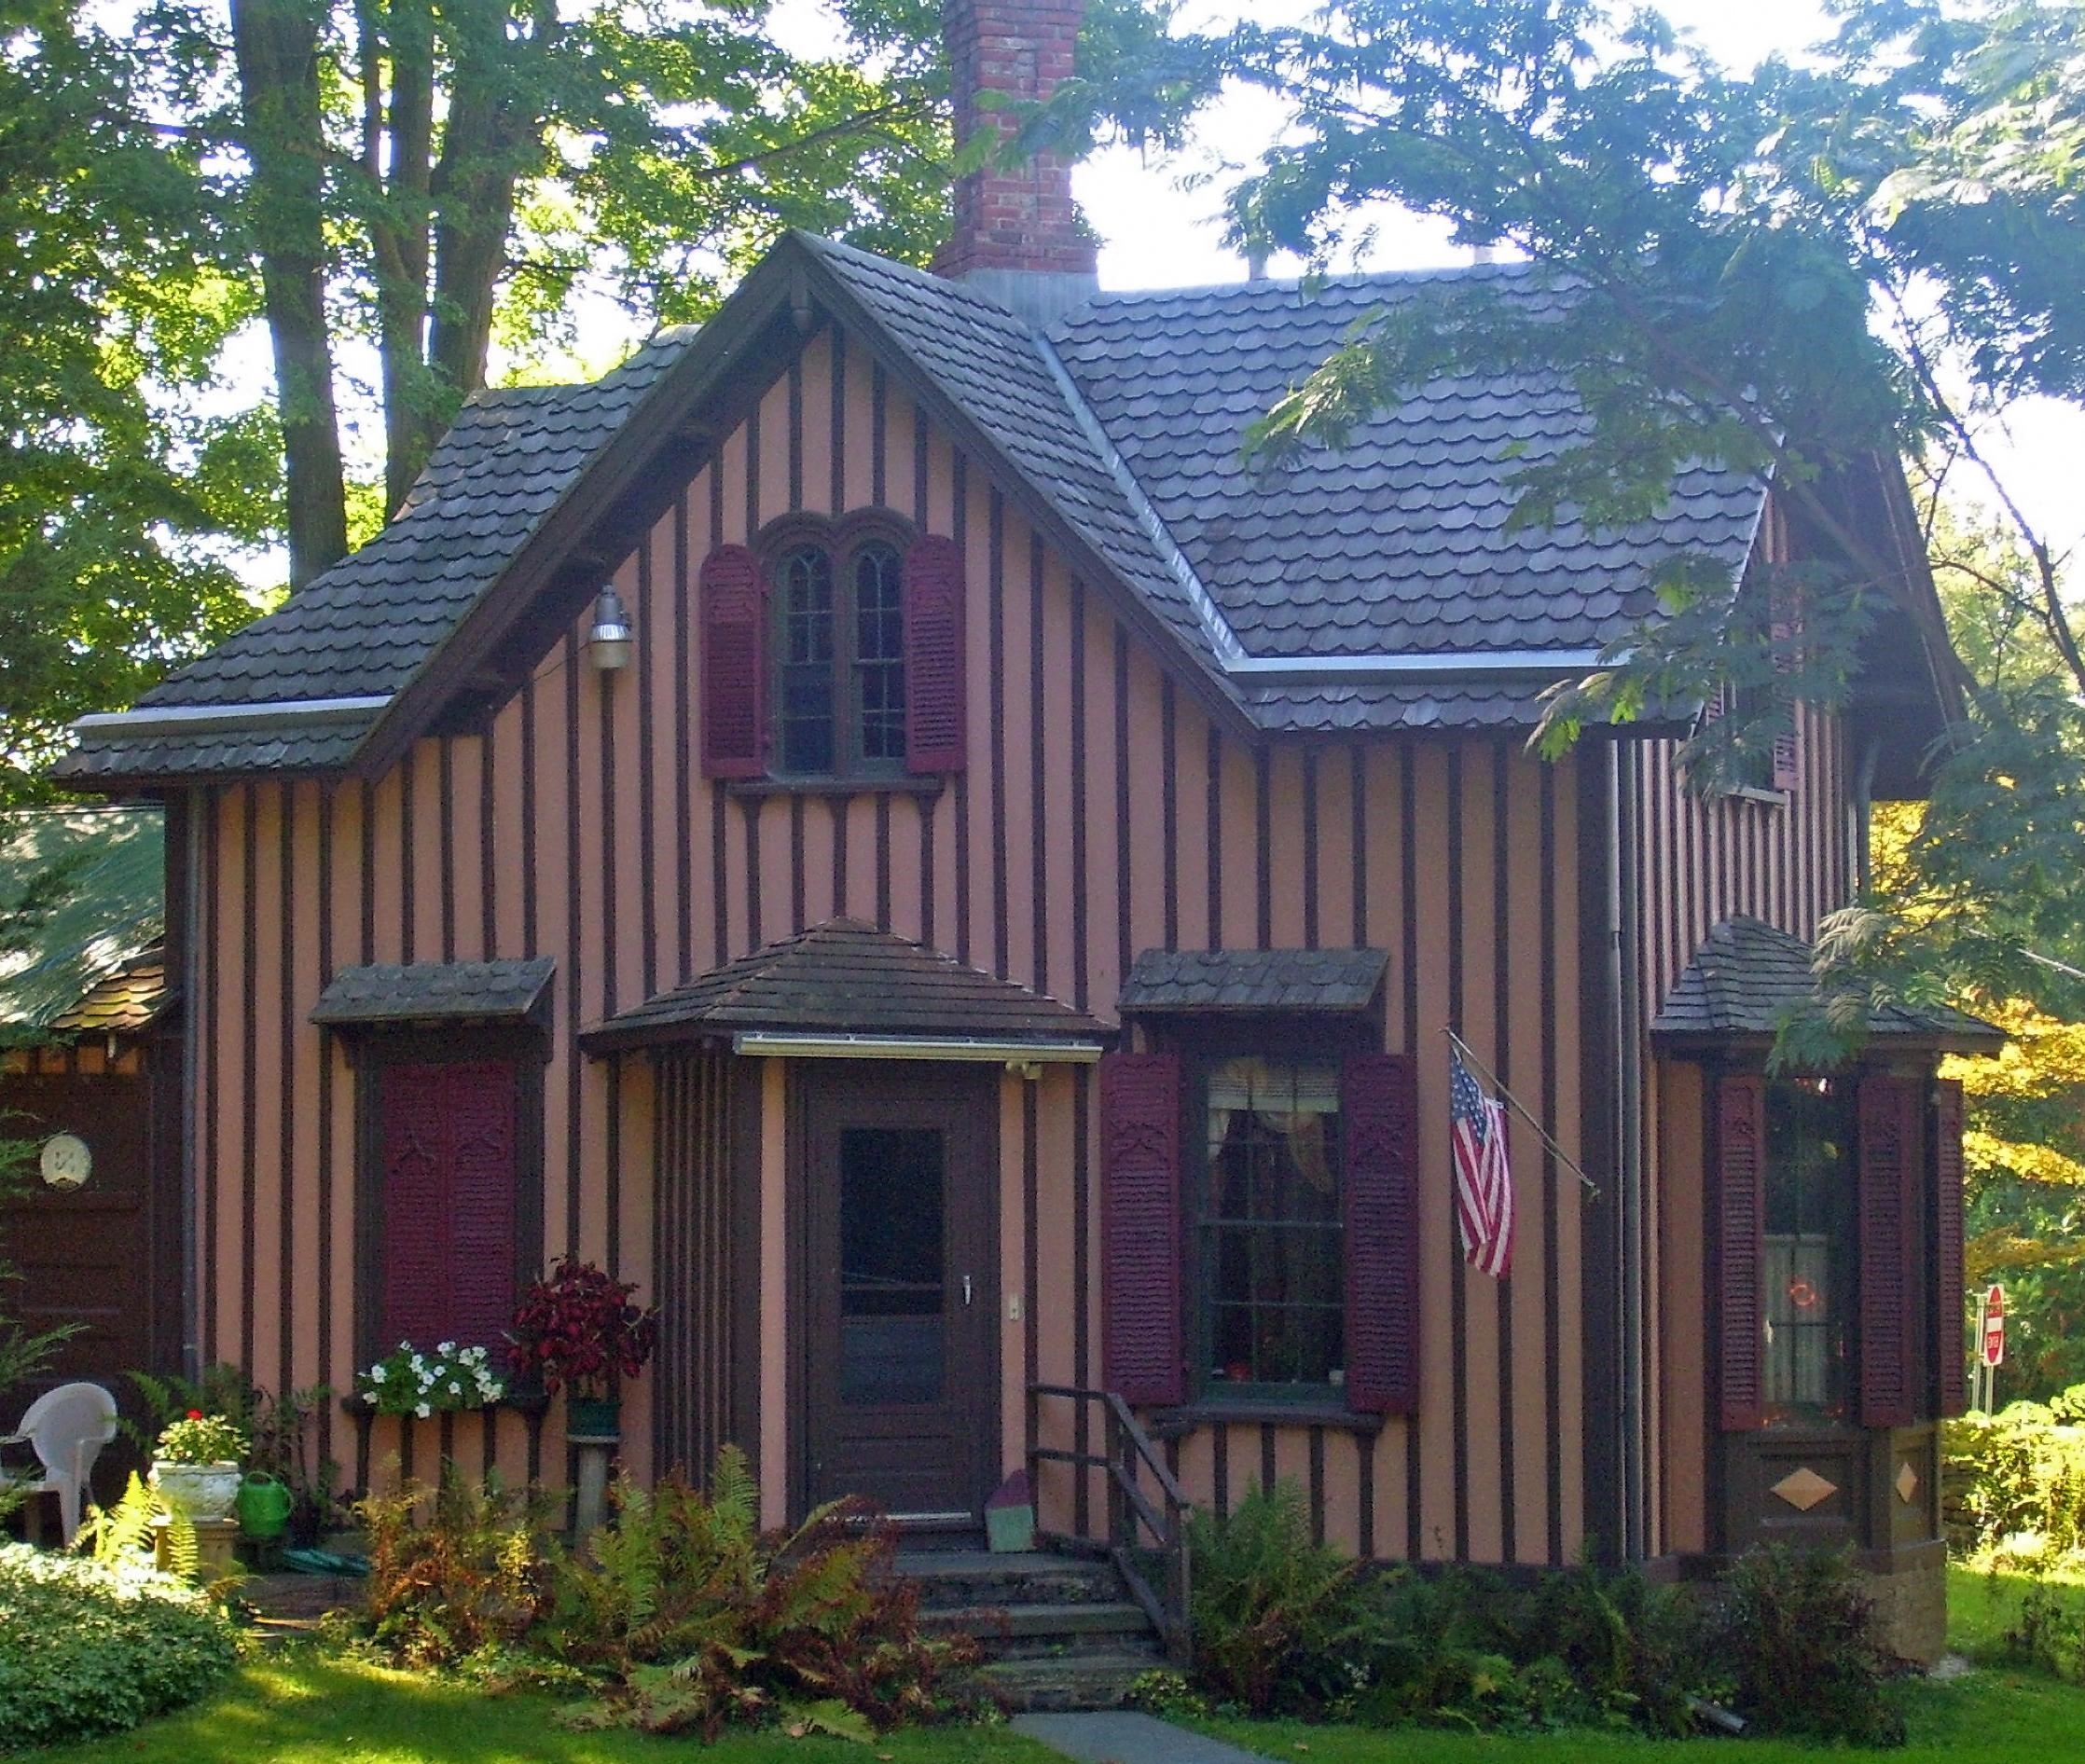 Small house in Carpenter Gothic style with board-and-batten siding